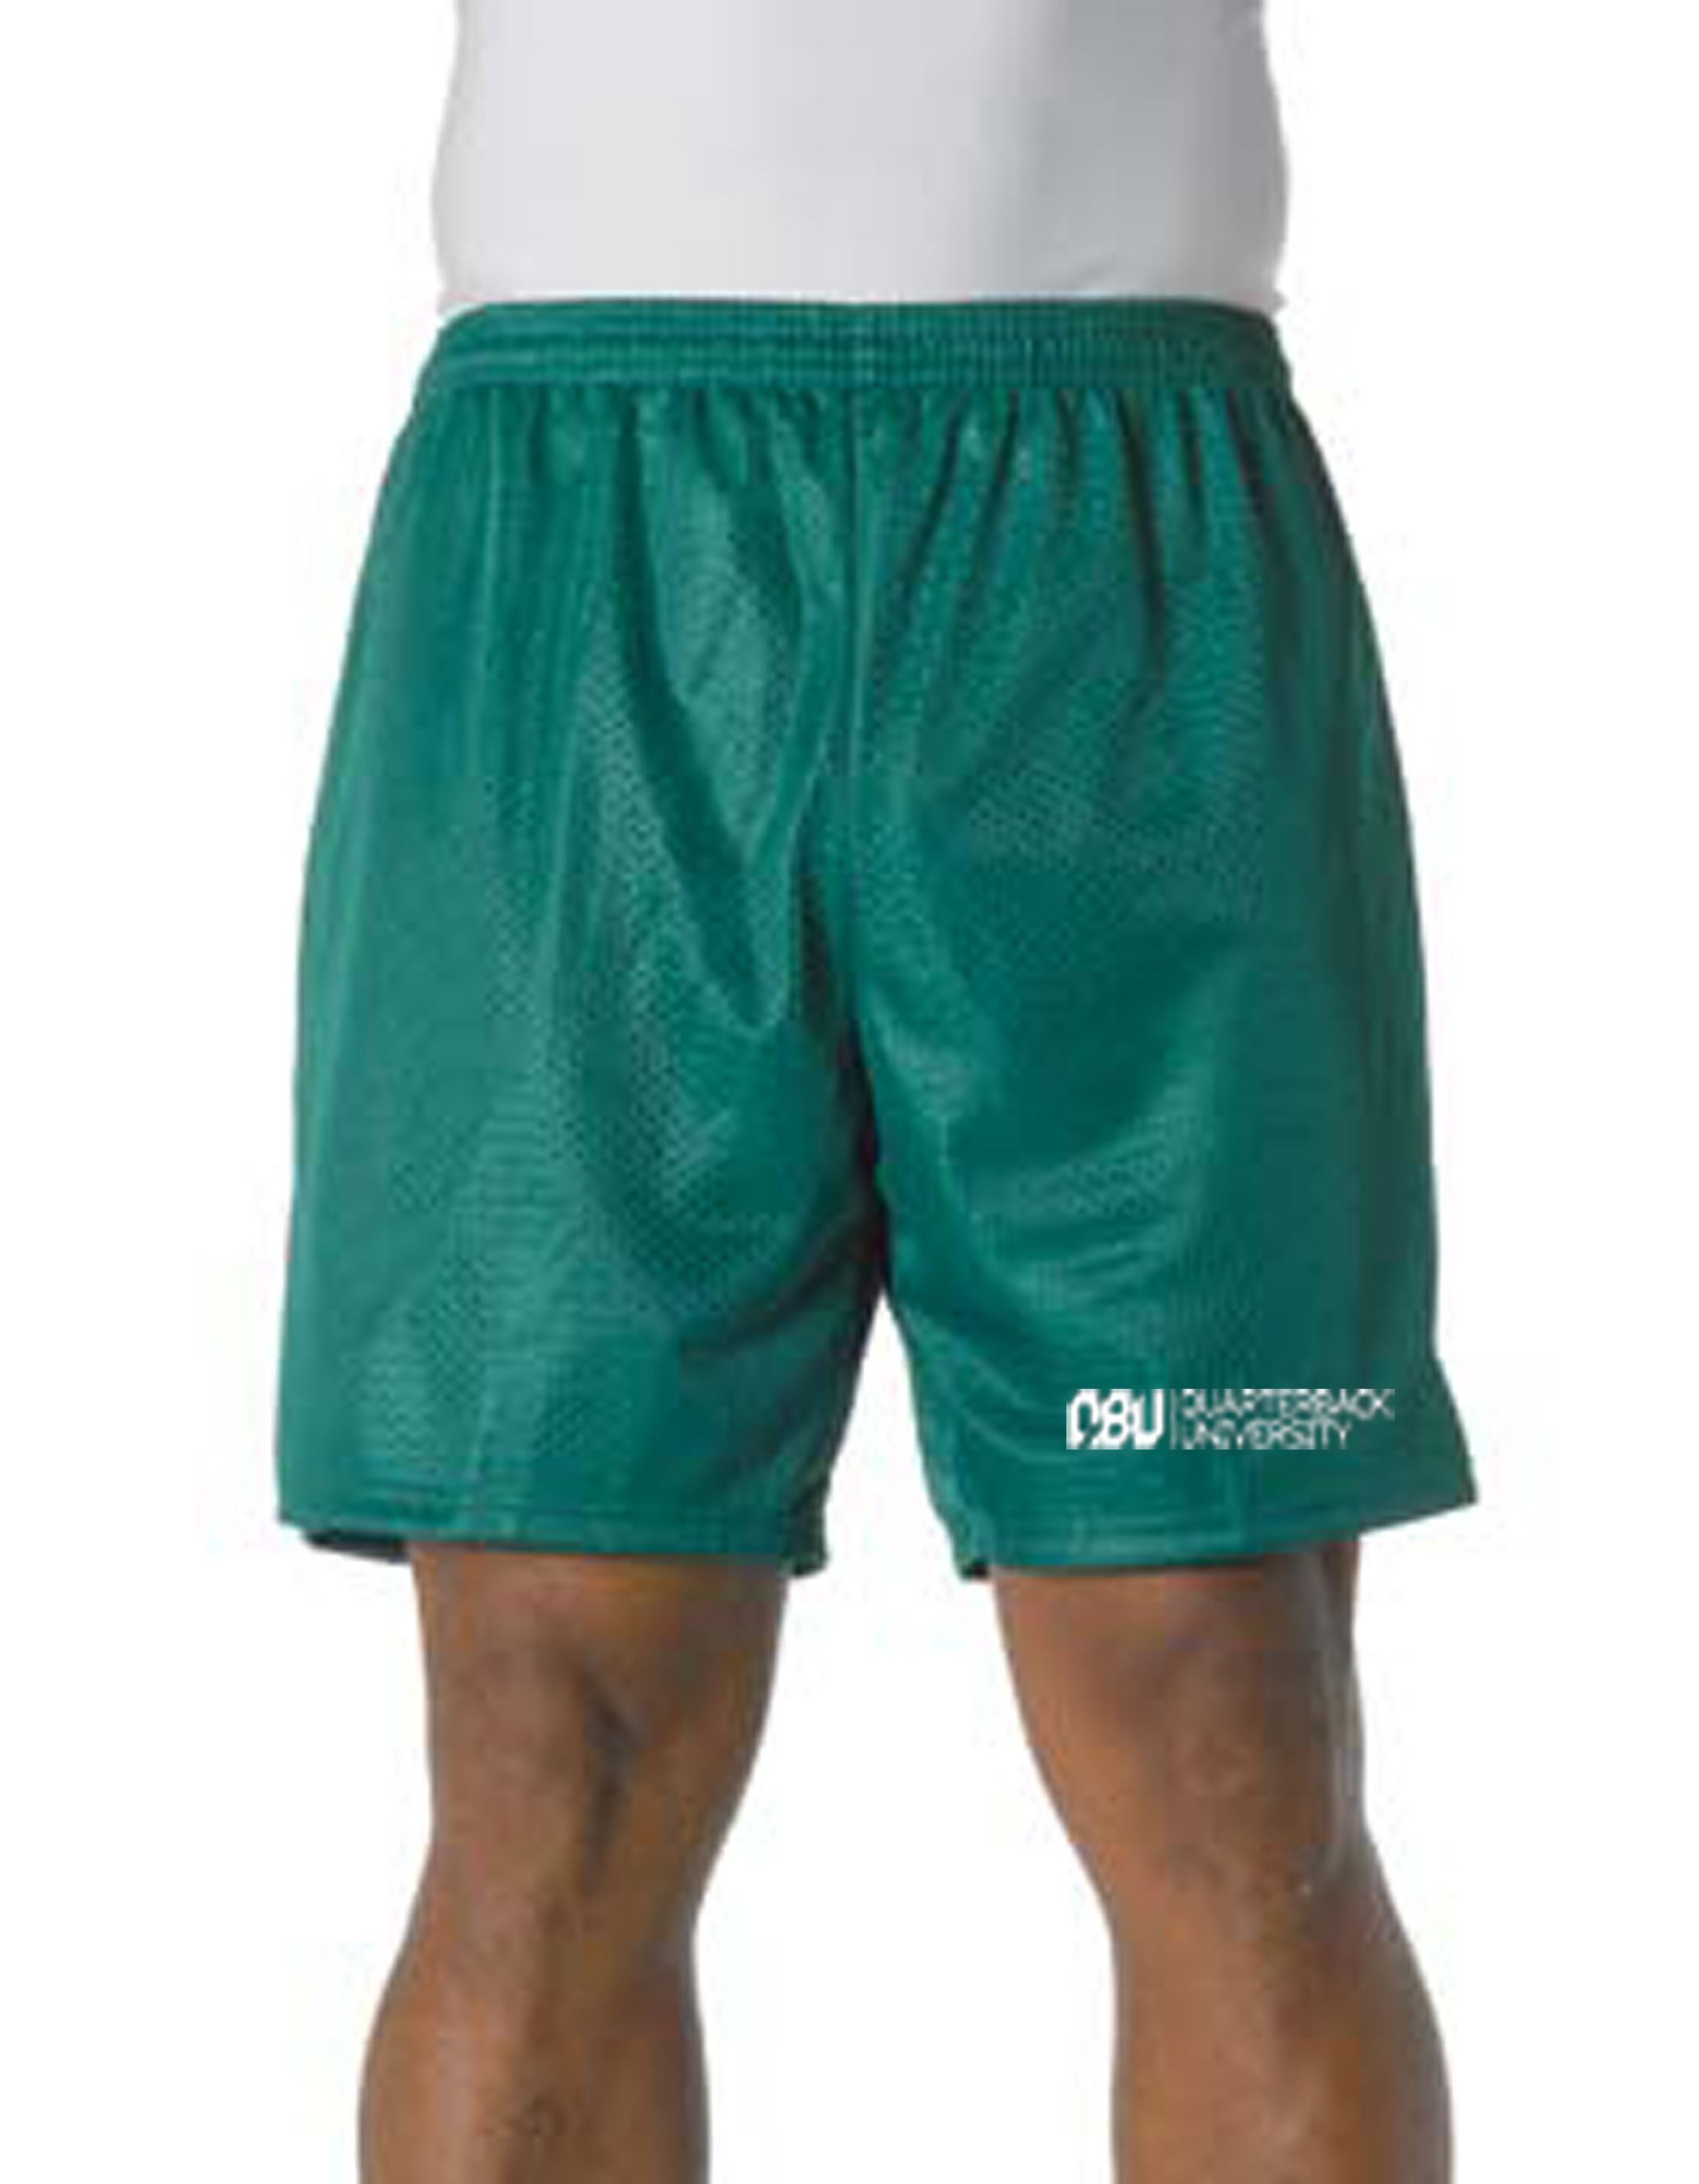 Quarterback University Shorts Green